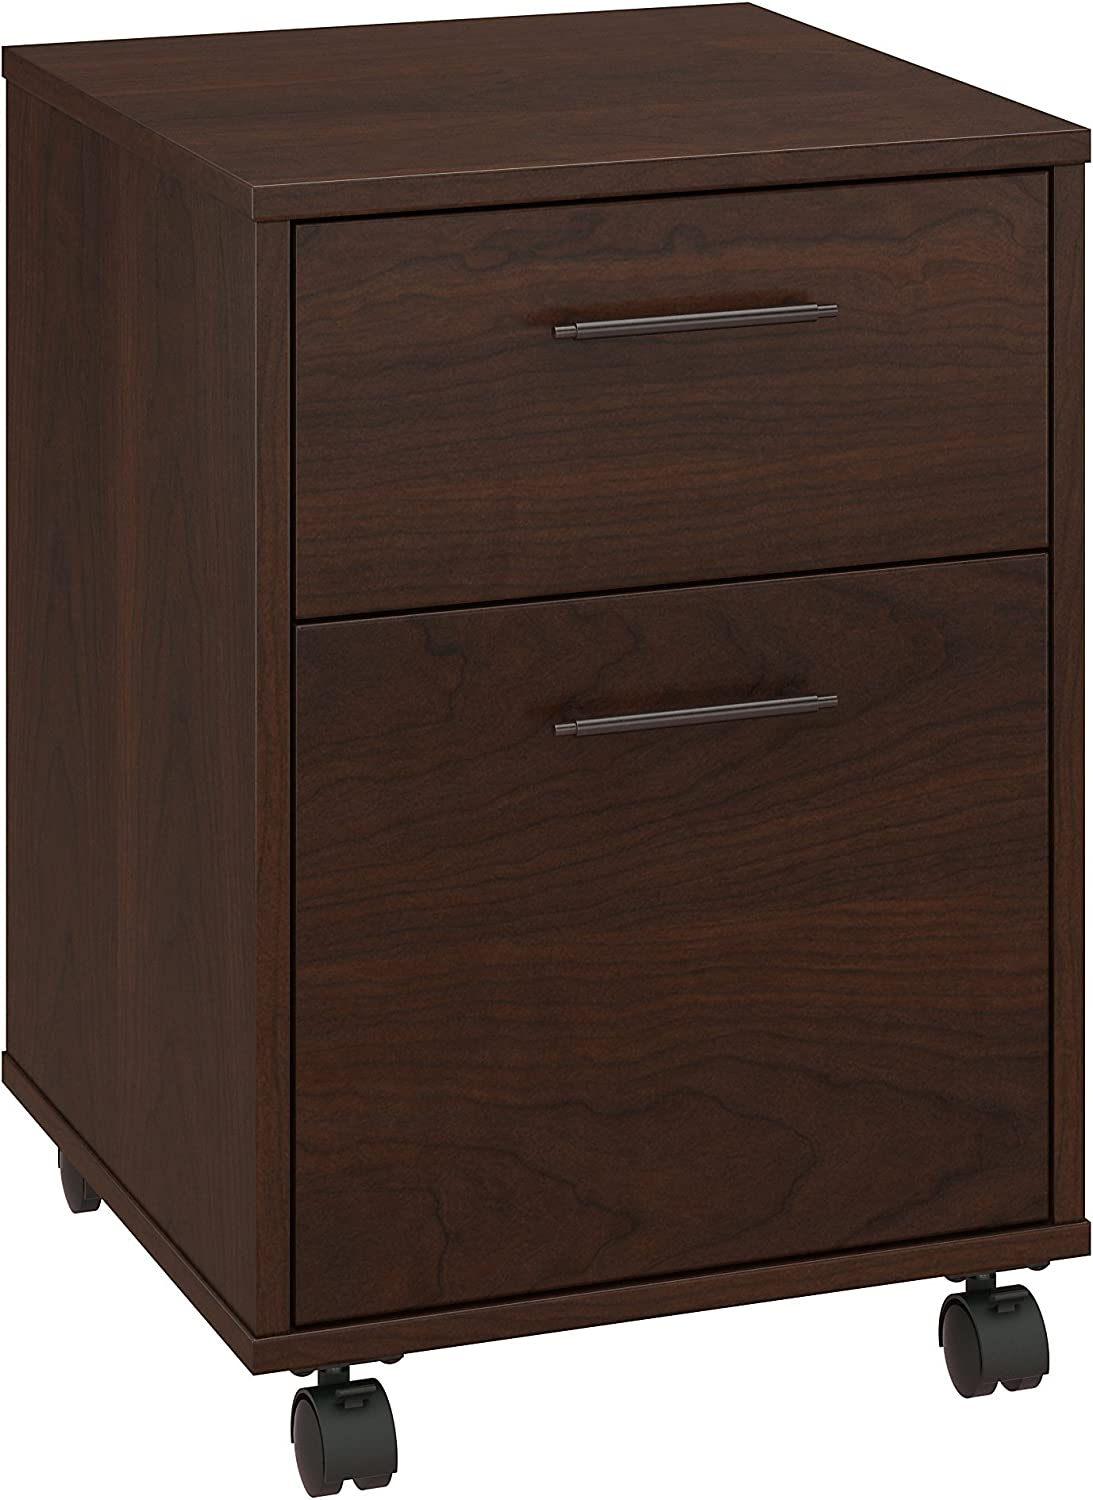 Bush Furniture Key West 2 Drawer Mobile File Cabinet in Bing Cherry